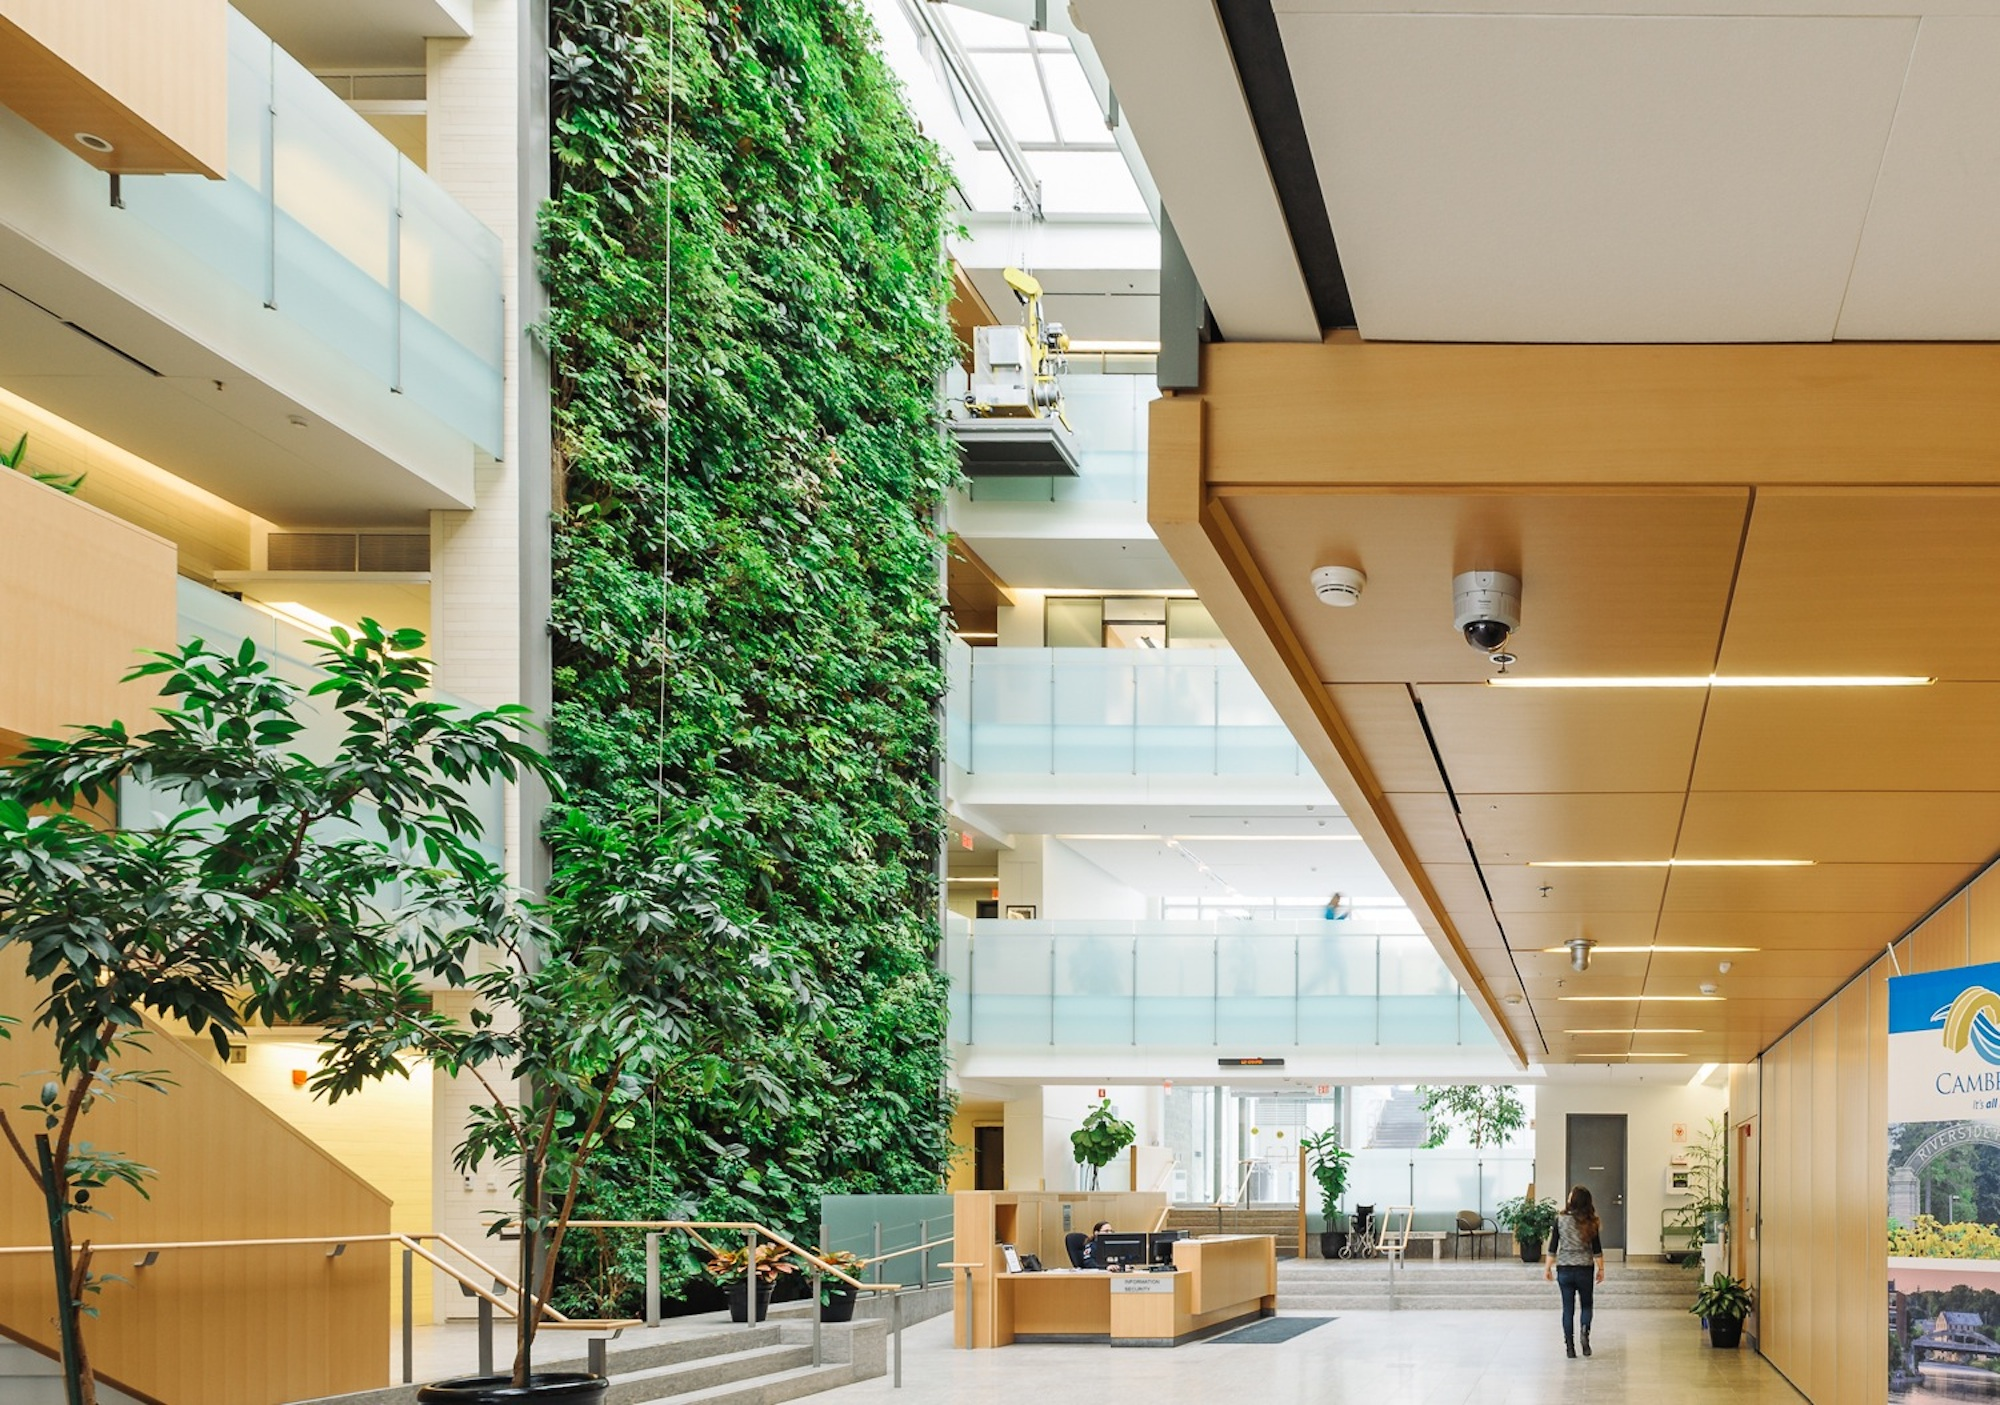 Government Building Living Wall Biofilters